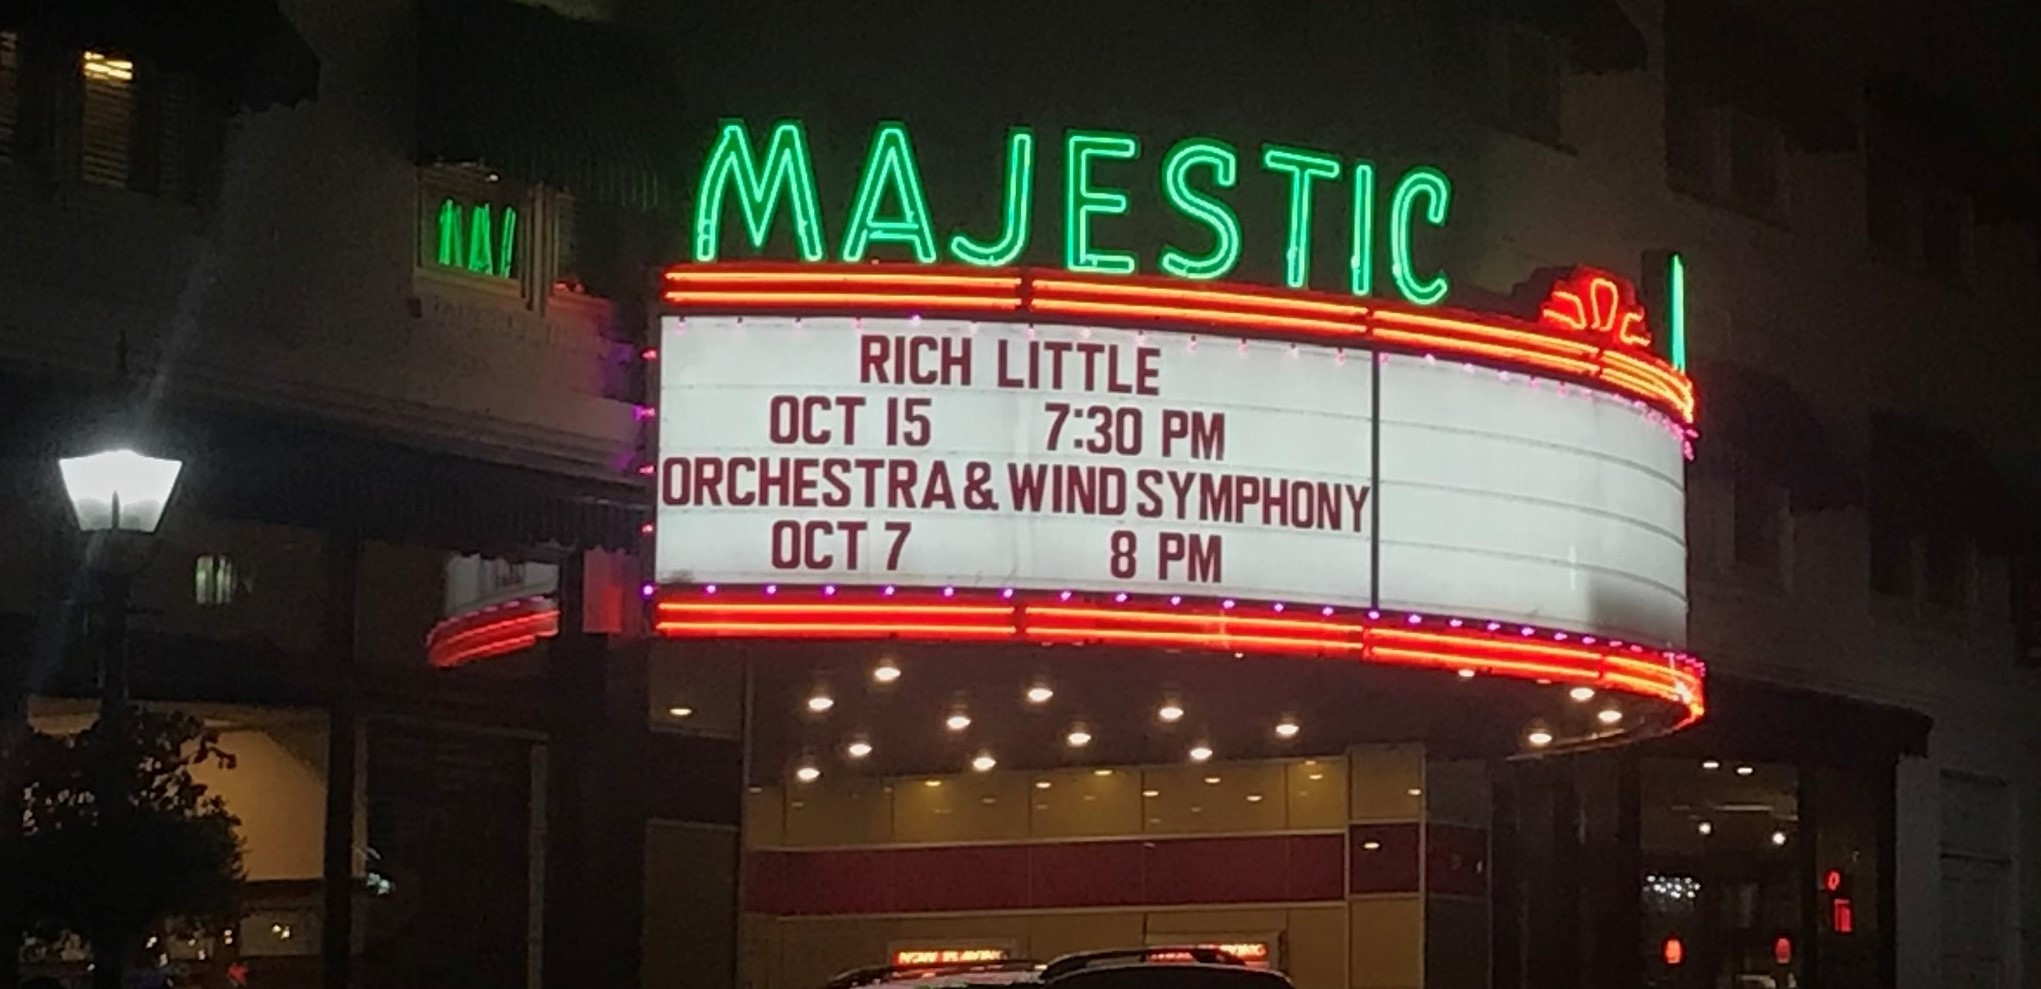 The Majestic Theater's marquee advertises a Sunderman Conservatory concert for the first time in nearly two years (Photo courtesy of Megan McCook '23)